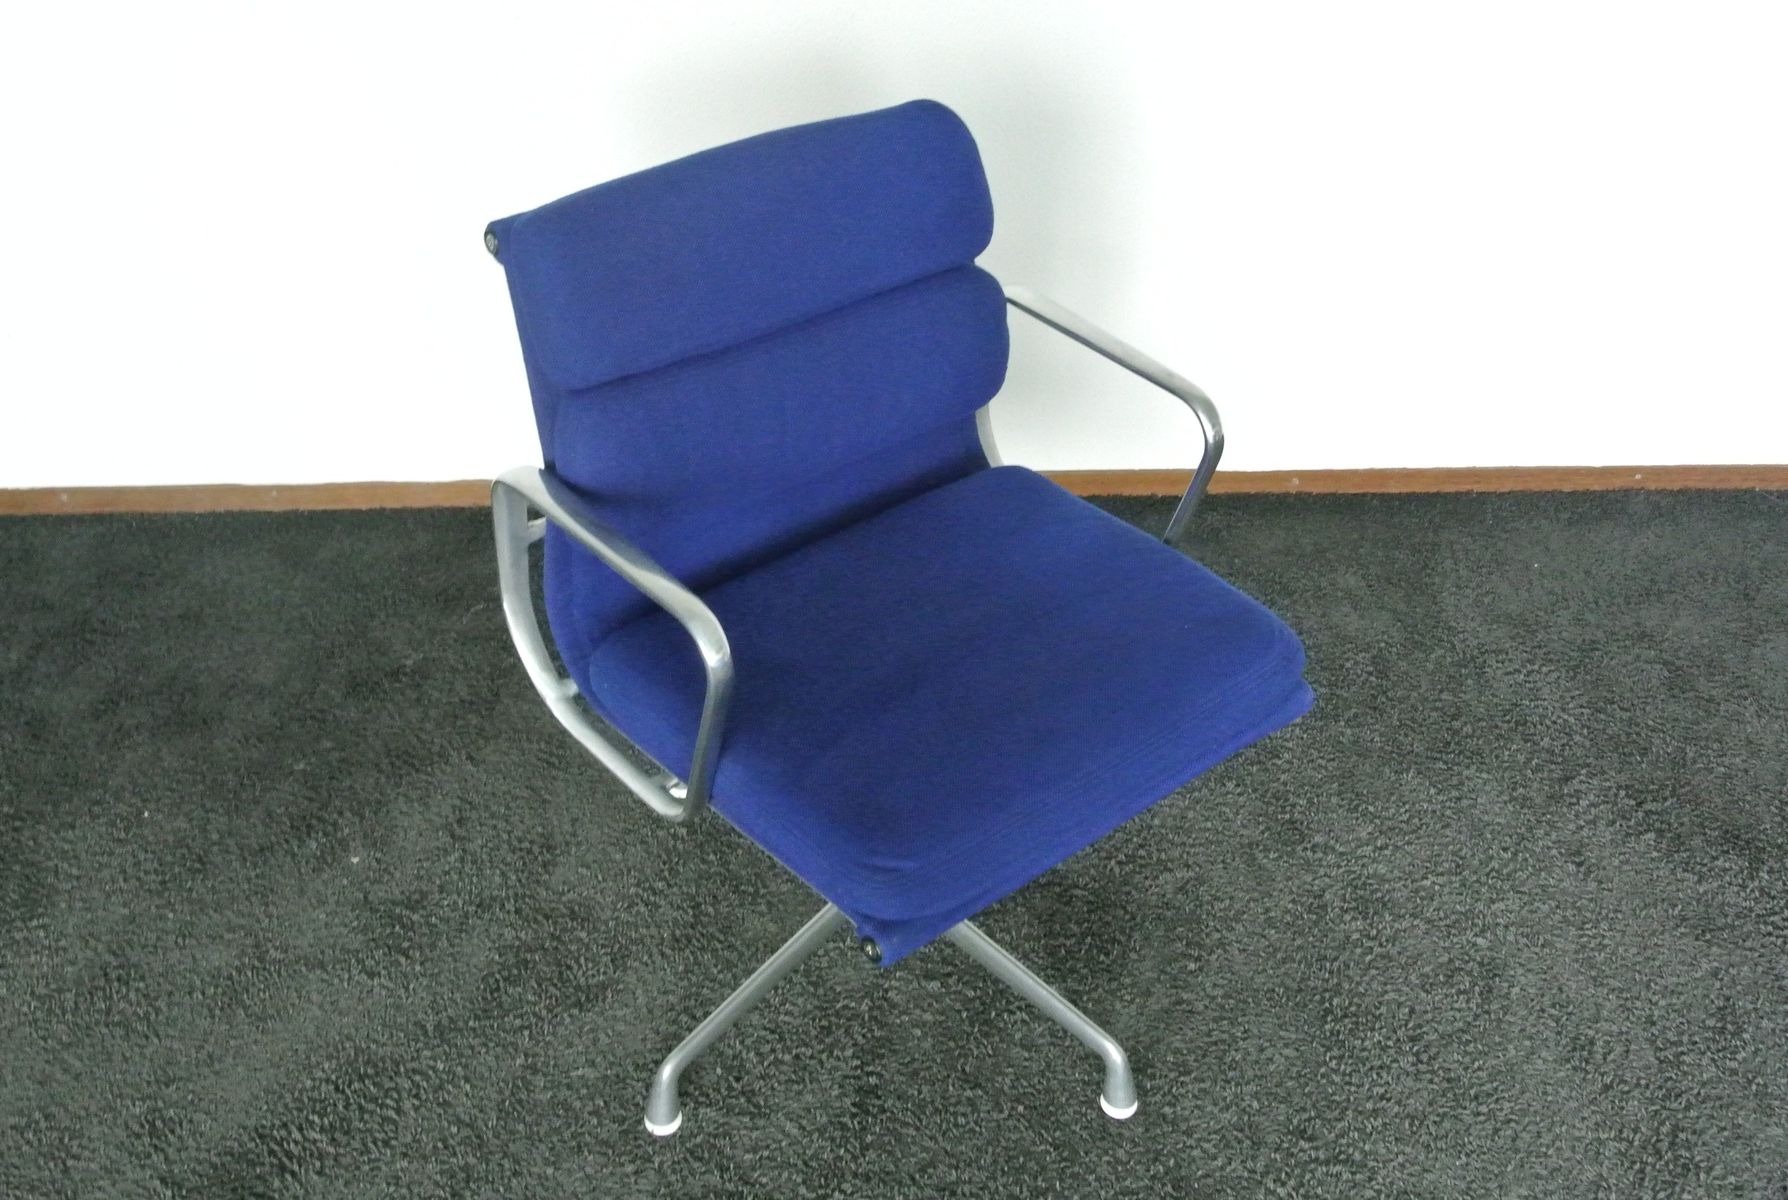 EA208 Softpad Chair by Eames for Herman Miller for sale at